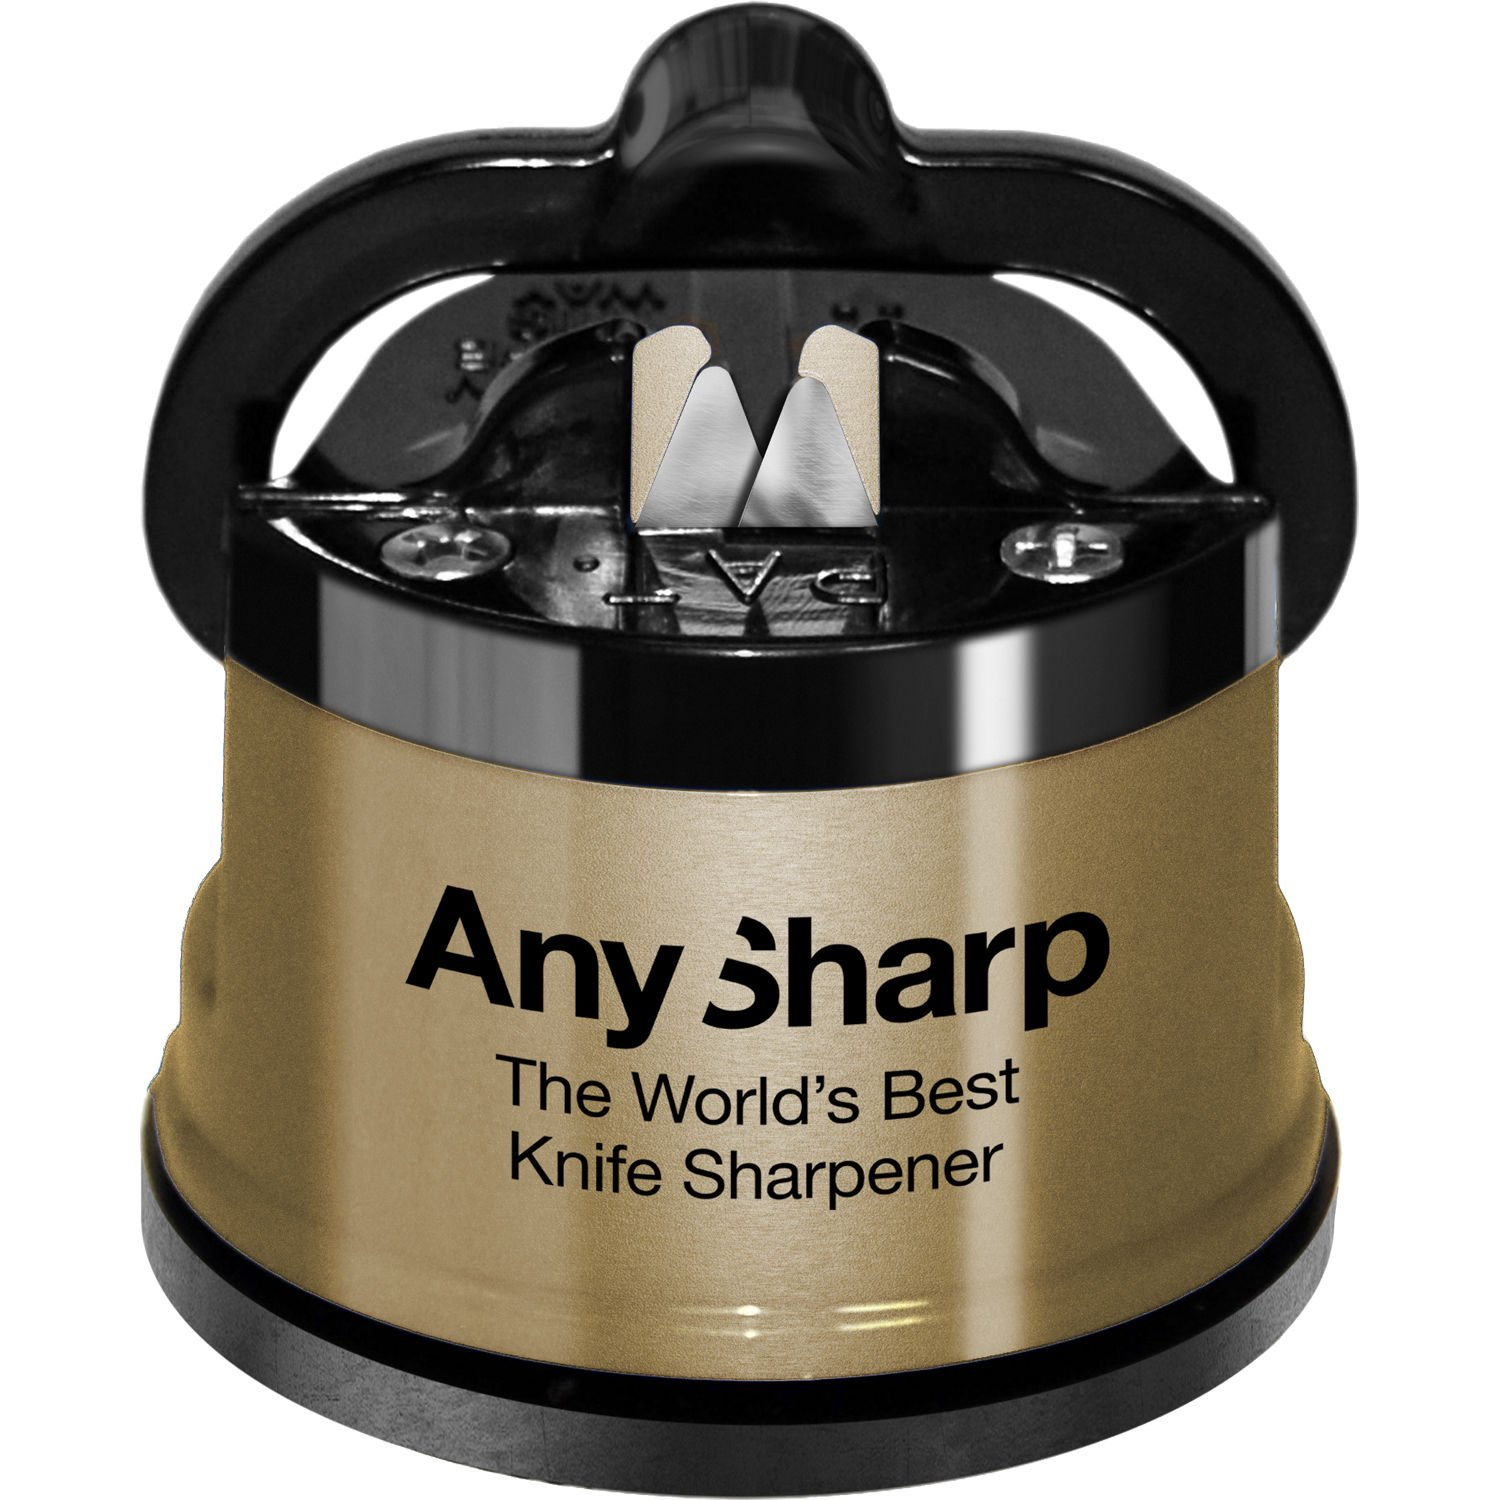 AnySharp Global World's Best Knife Sharpener with Power Suction Grip - Gold